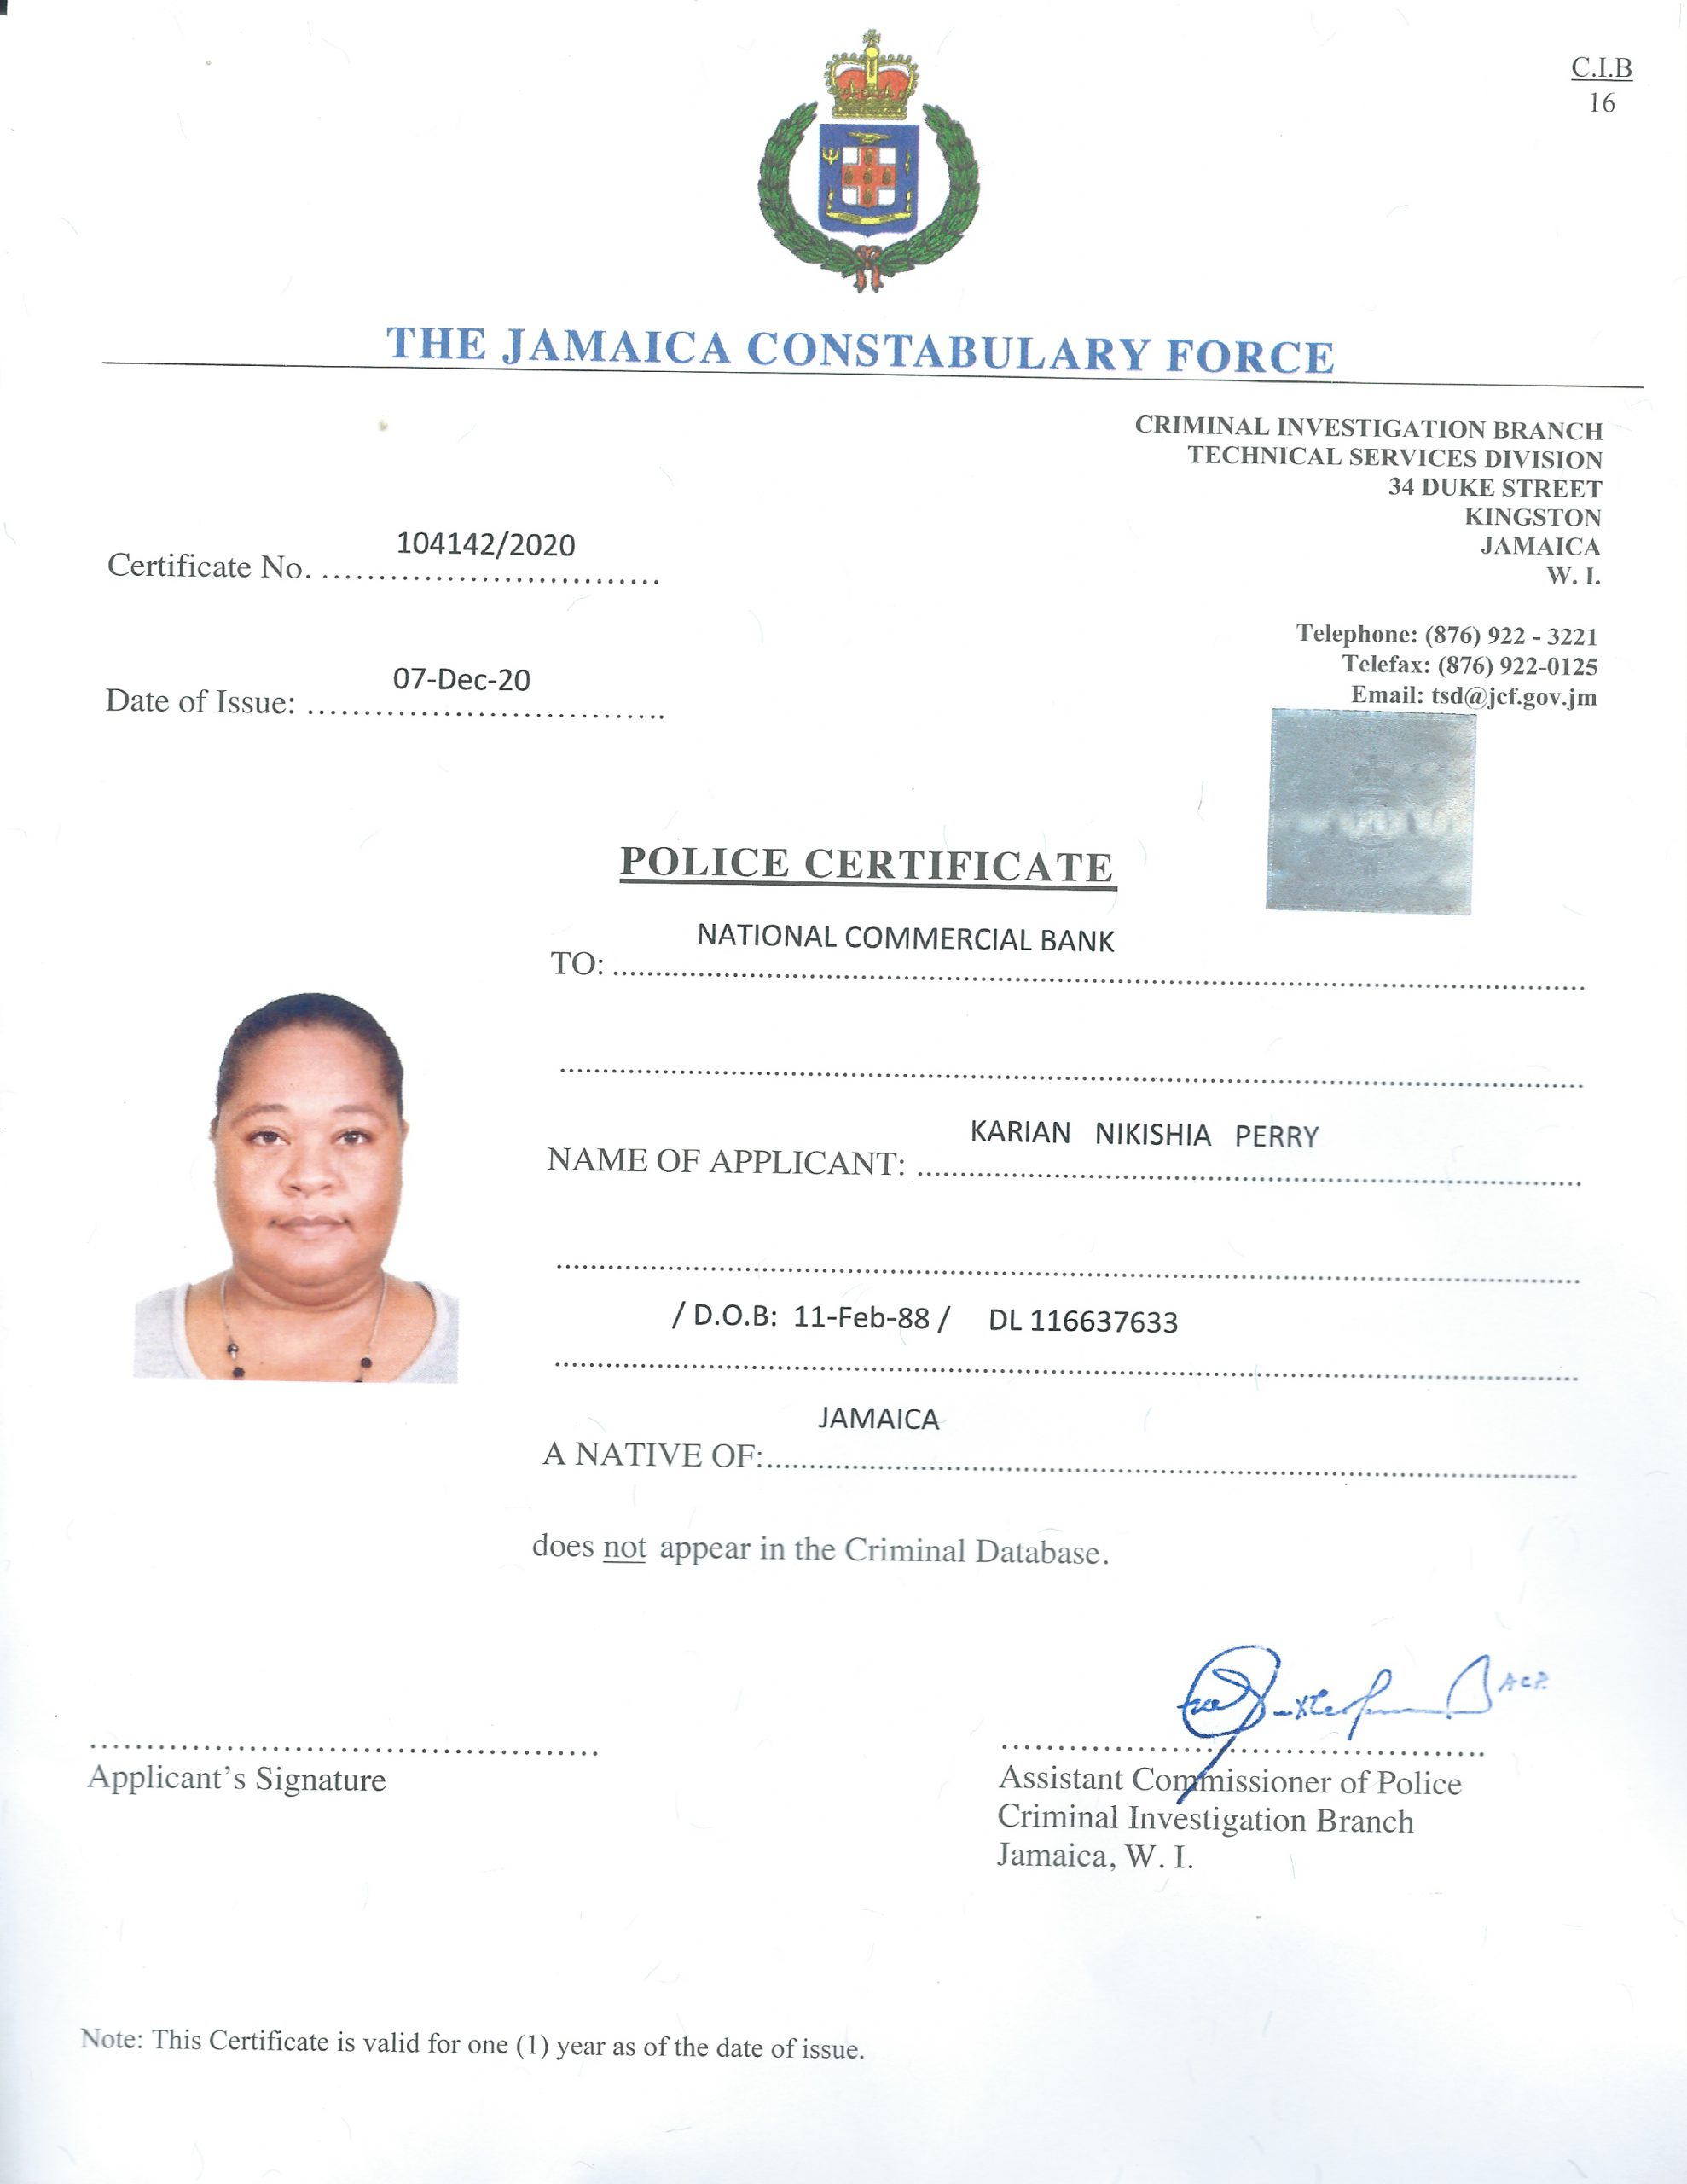 Police Record